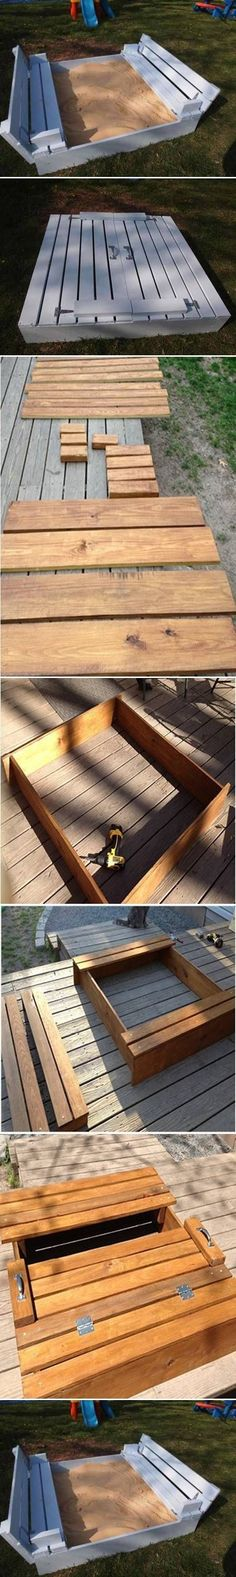 DIY Sandbox and Bench